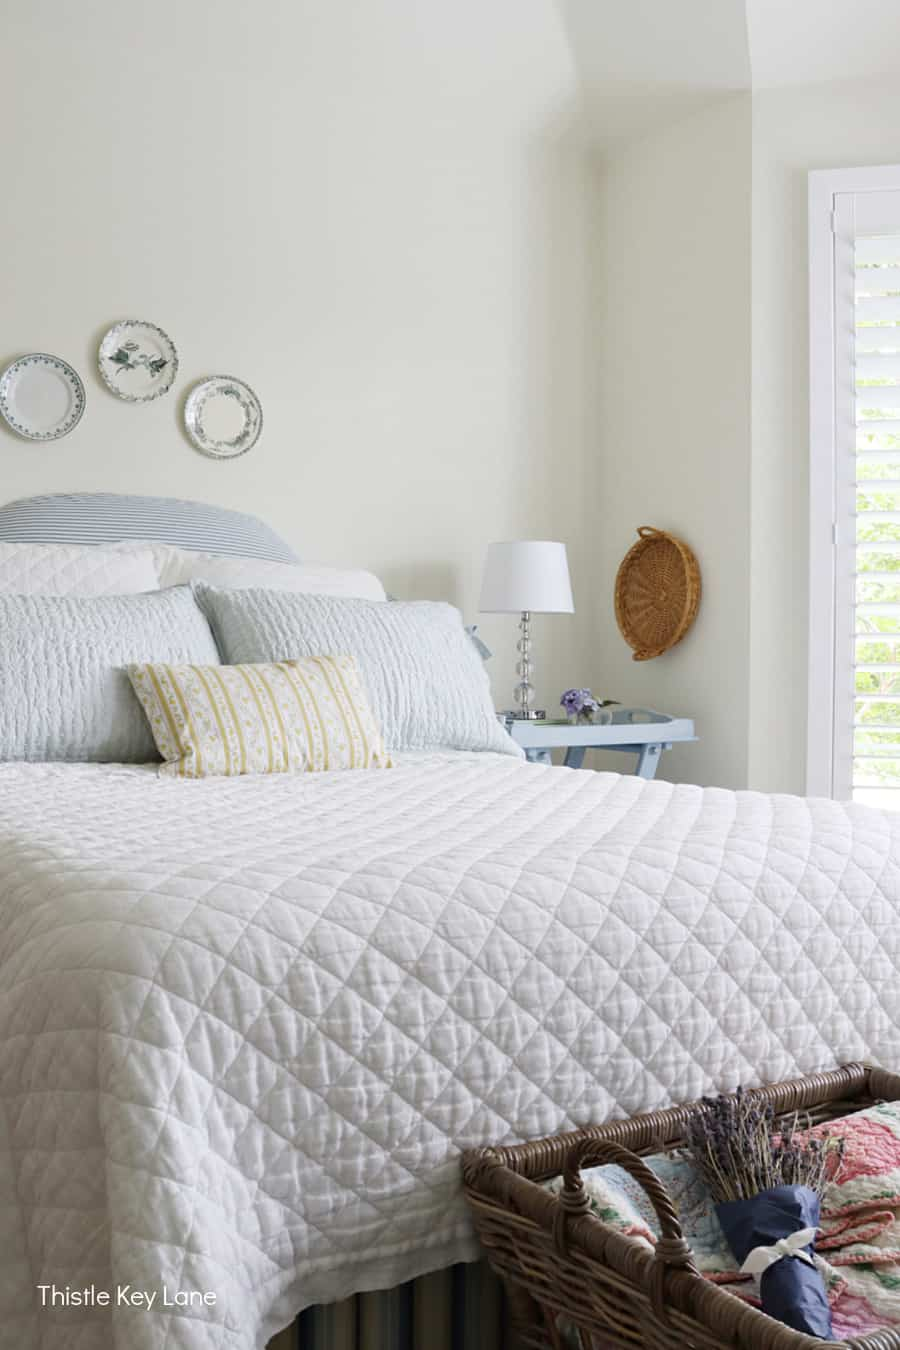 Bedroom with blue and white linens and plates over the headboard. Summer Bedroom Updates And A Quilt Basket.